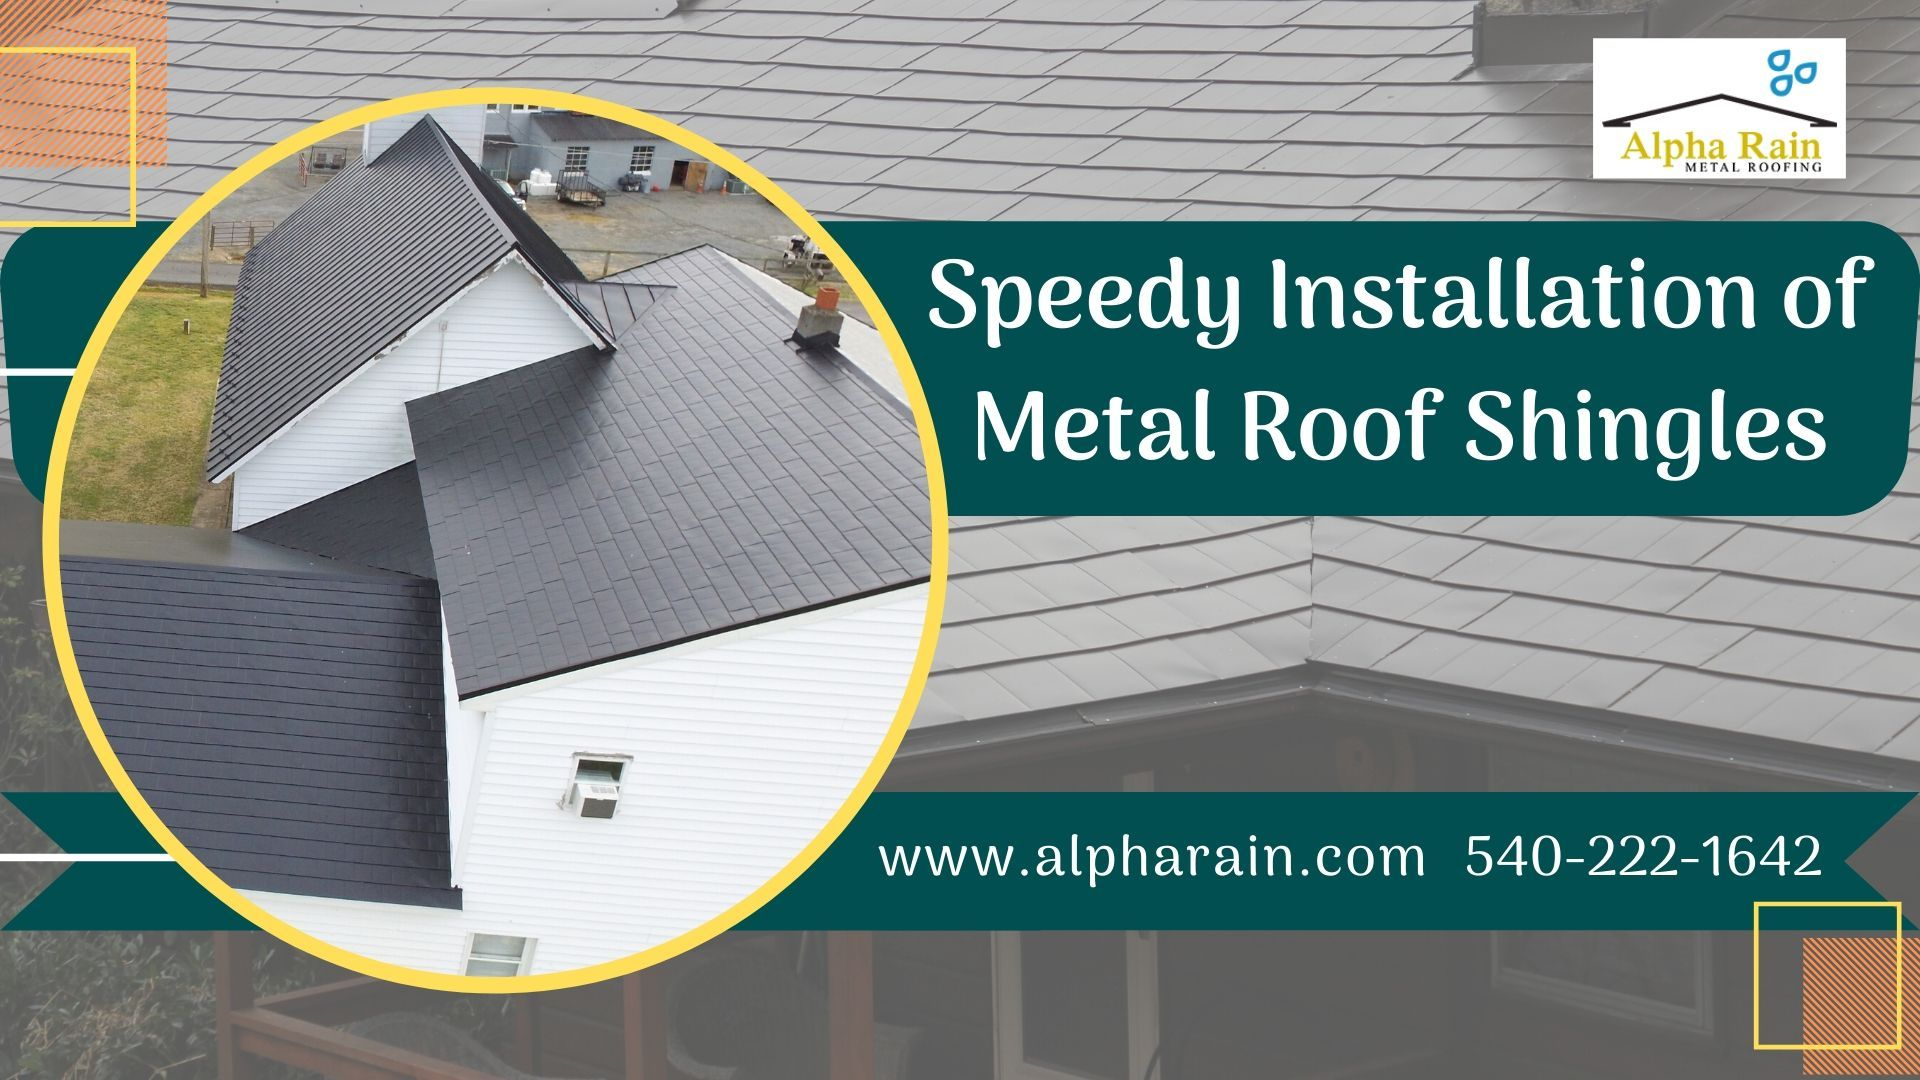 You Don T Have To Spend More Money On Temporary Asphalt Shingles When We Provide You Permanent Metal Shingles At Th In 2020 Metal Shingles Metal Shingle Roof Shingling